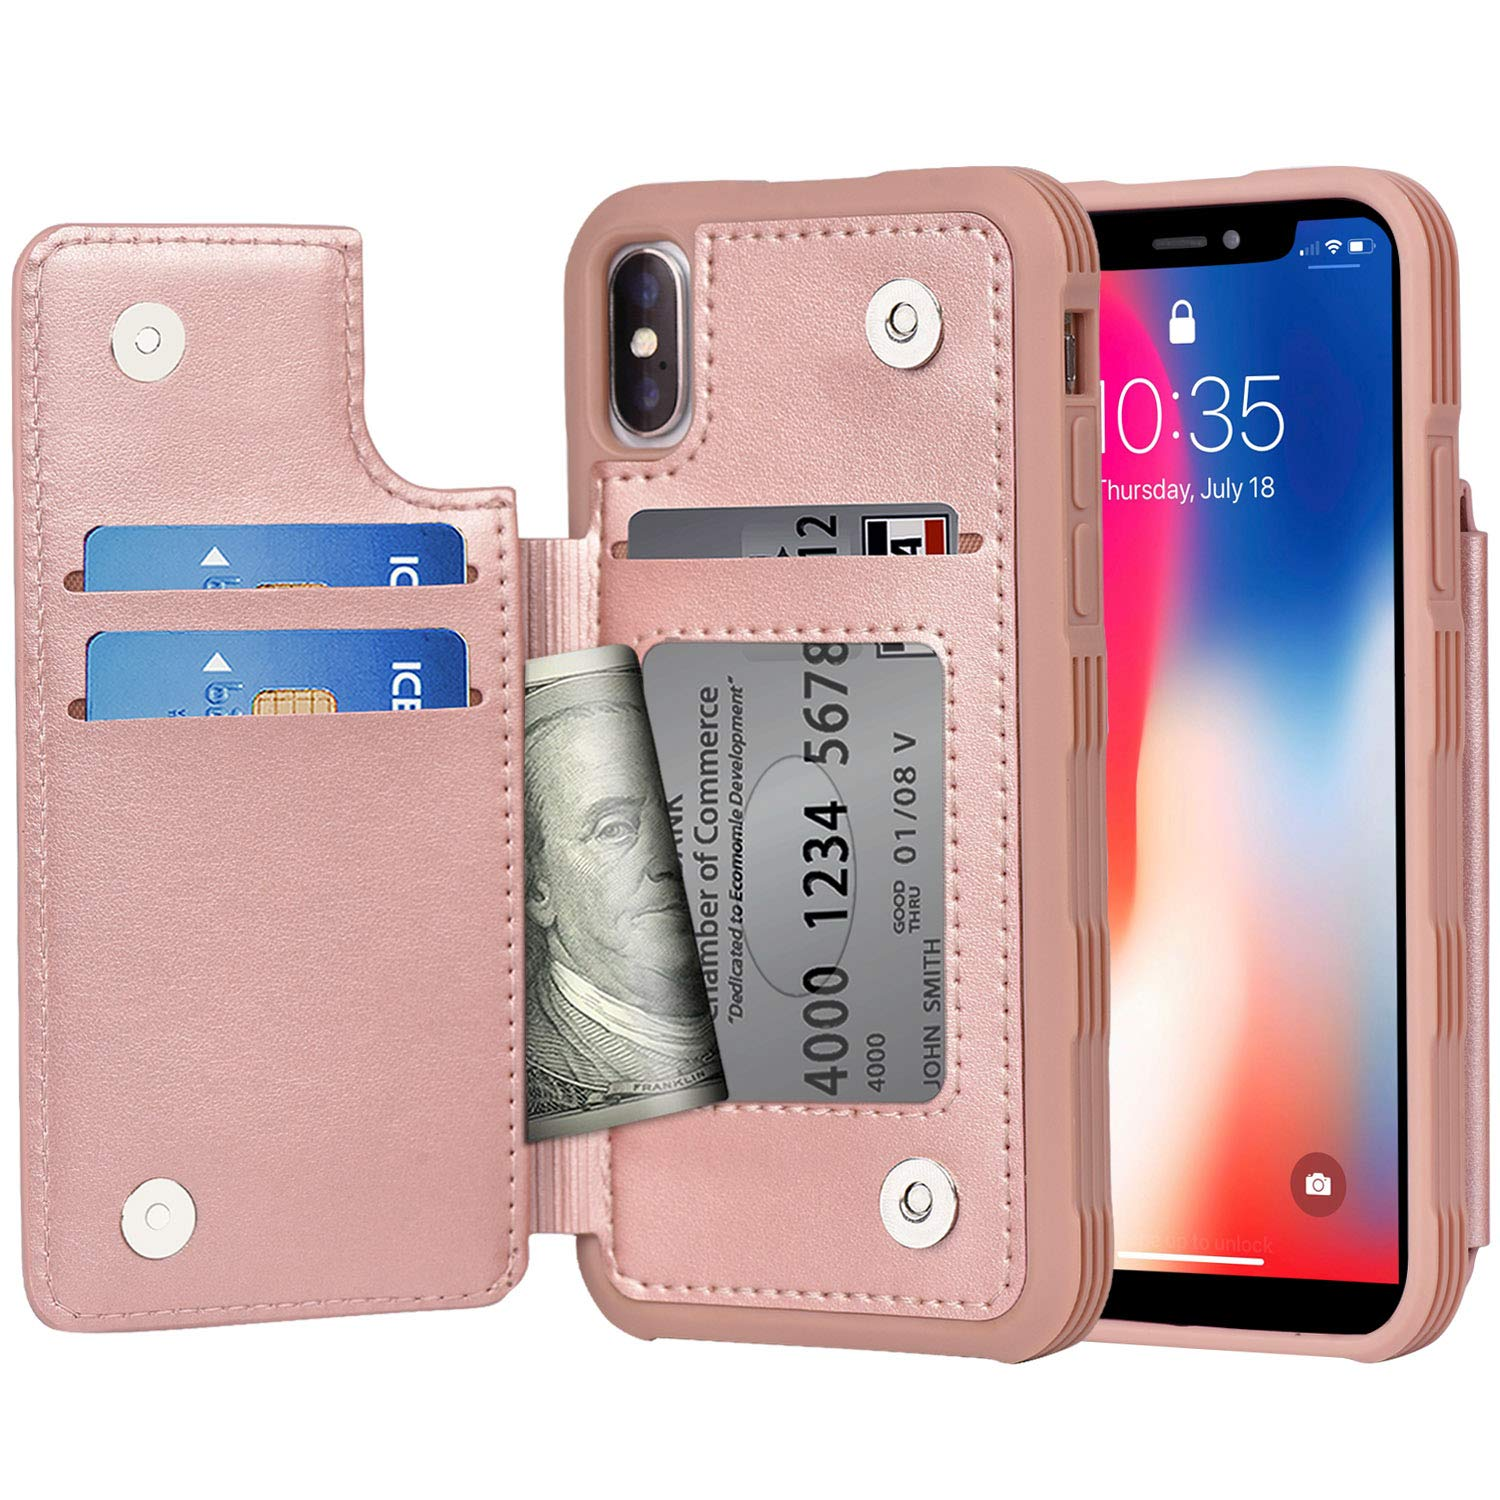 Arae Case for iPhone X/iPhone Xs - Wallet Case with PU Leather Card Pockets [Shockproof] Back Flip Cover for iPhone X/Xs 5.8 inch (Rosegold) by Arae